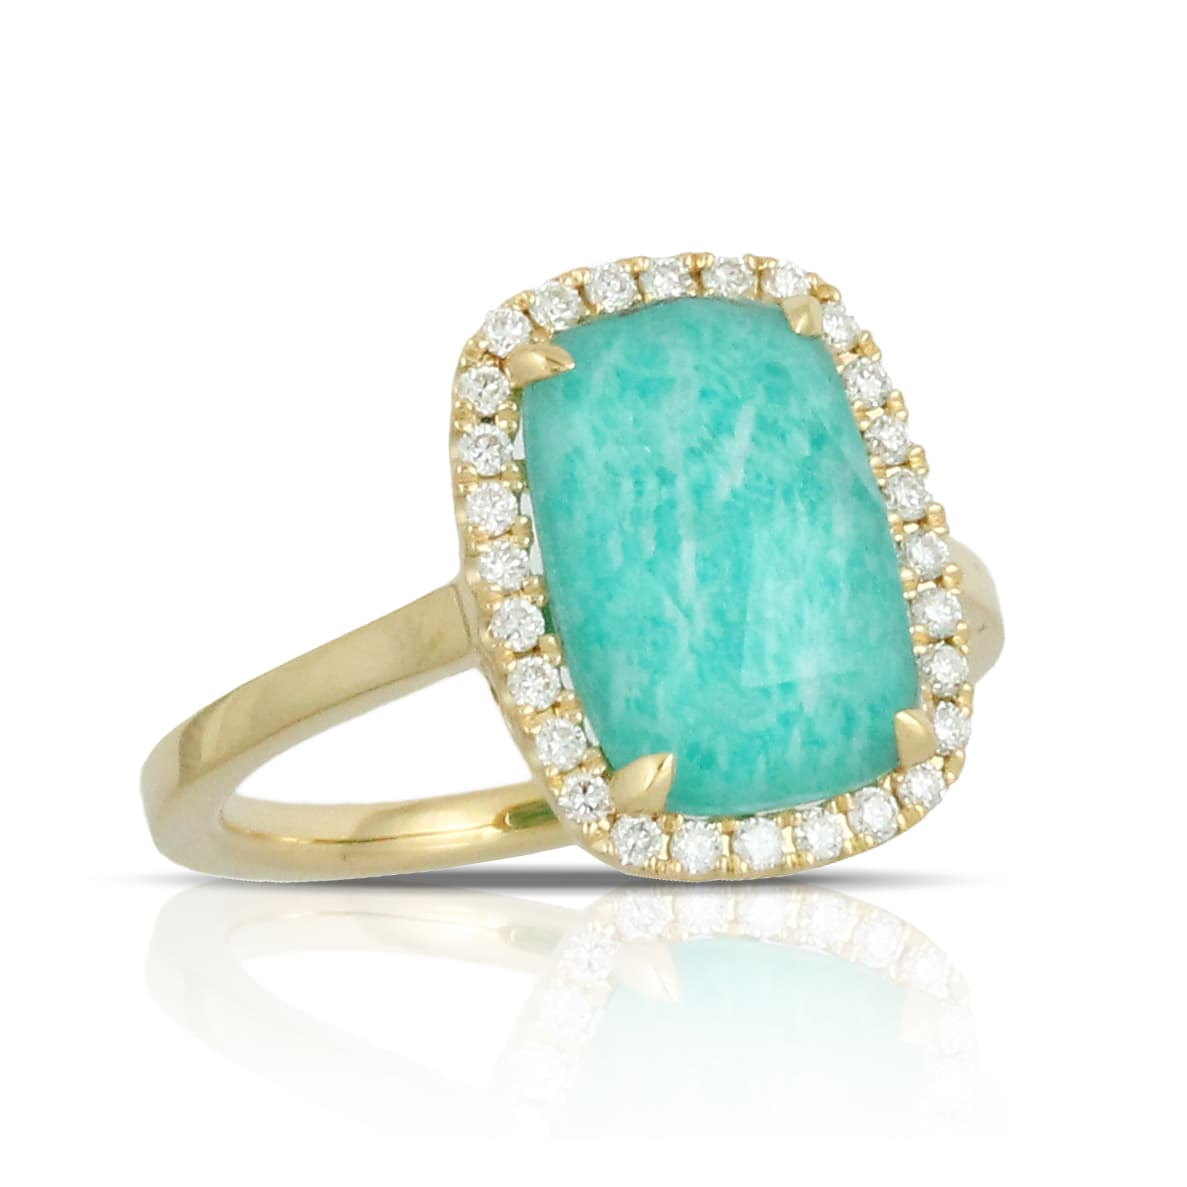 18K YELLOW GOLD DIAMOND RING WITH CLEAR QUARTZ OVER AMAZONITE. NO DIAMOND ON SHANK.